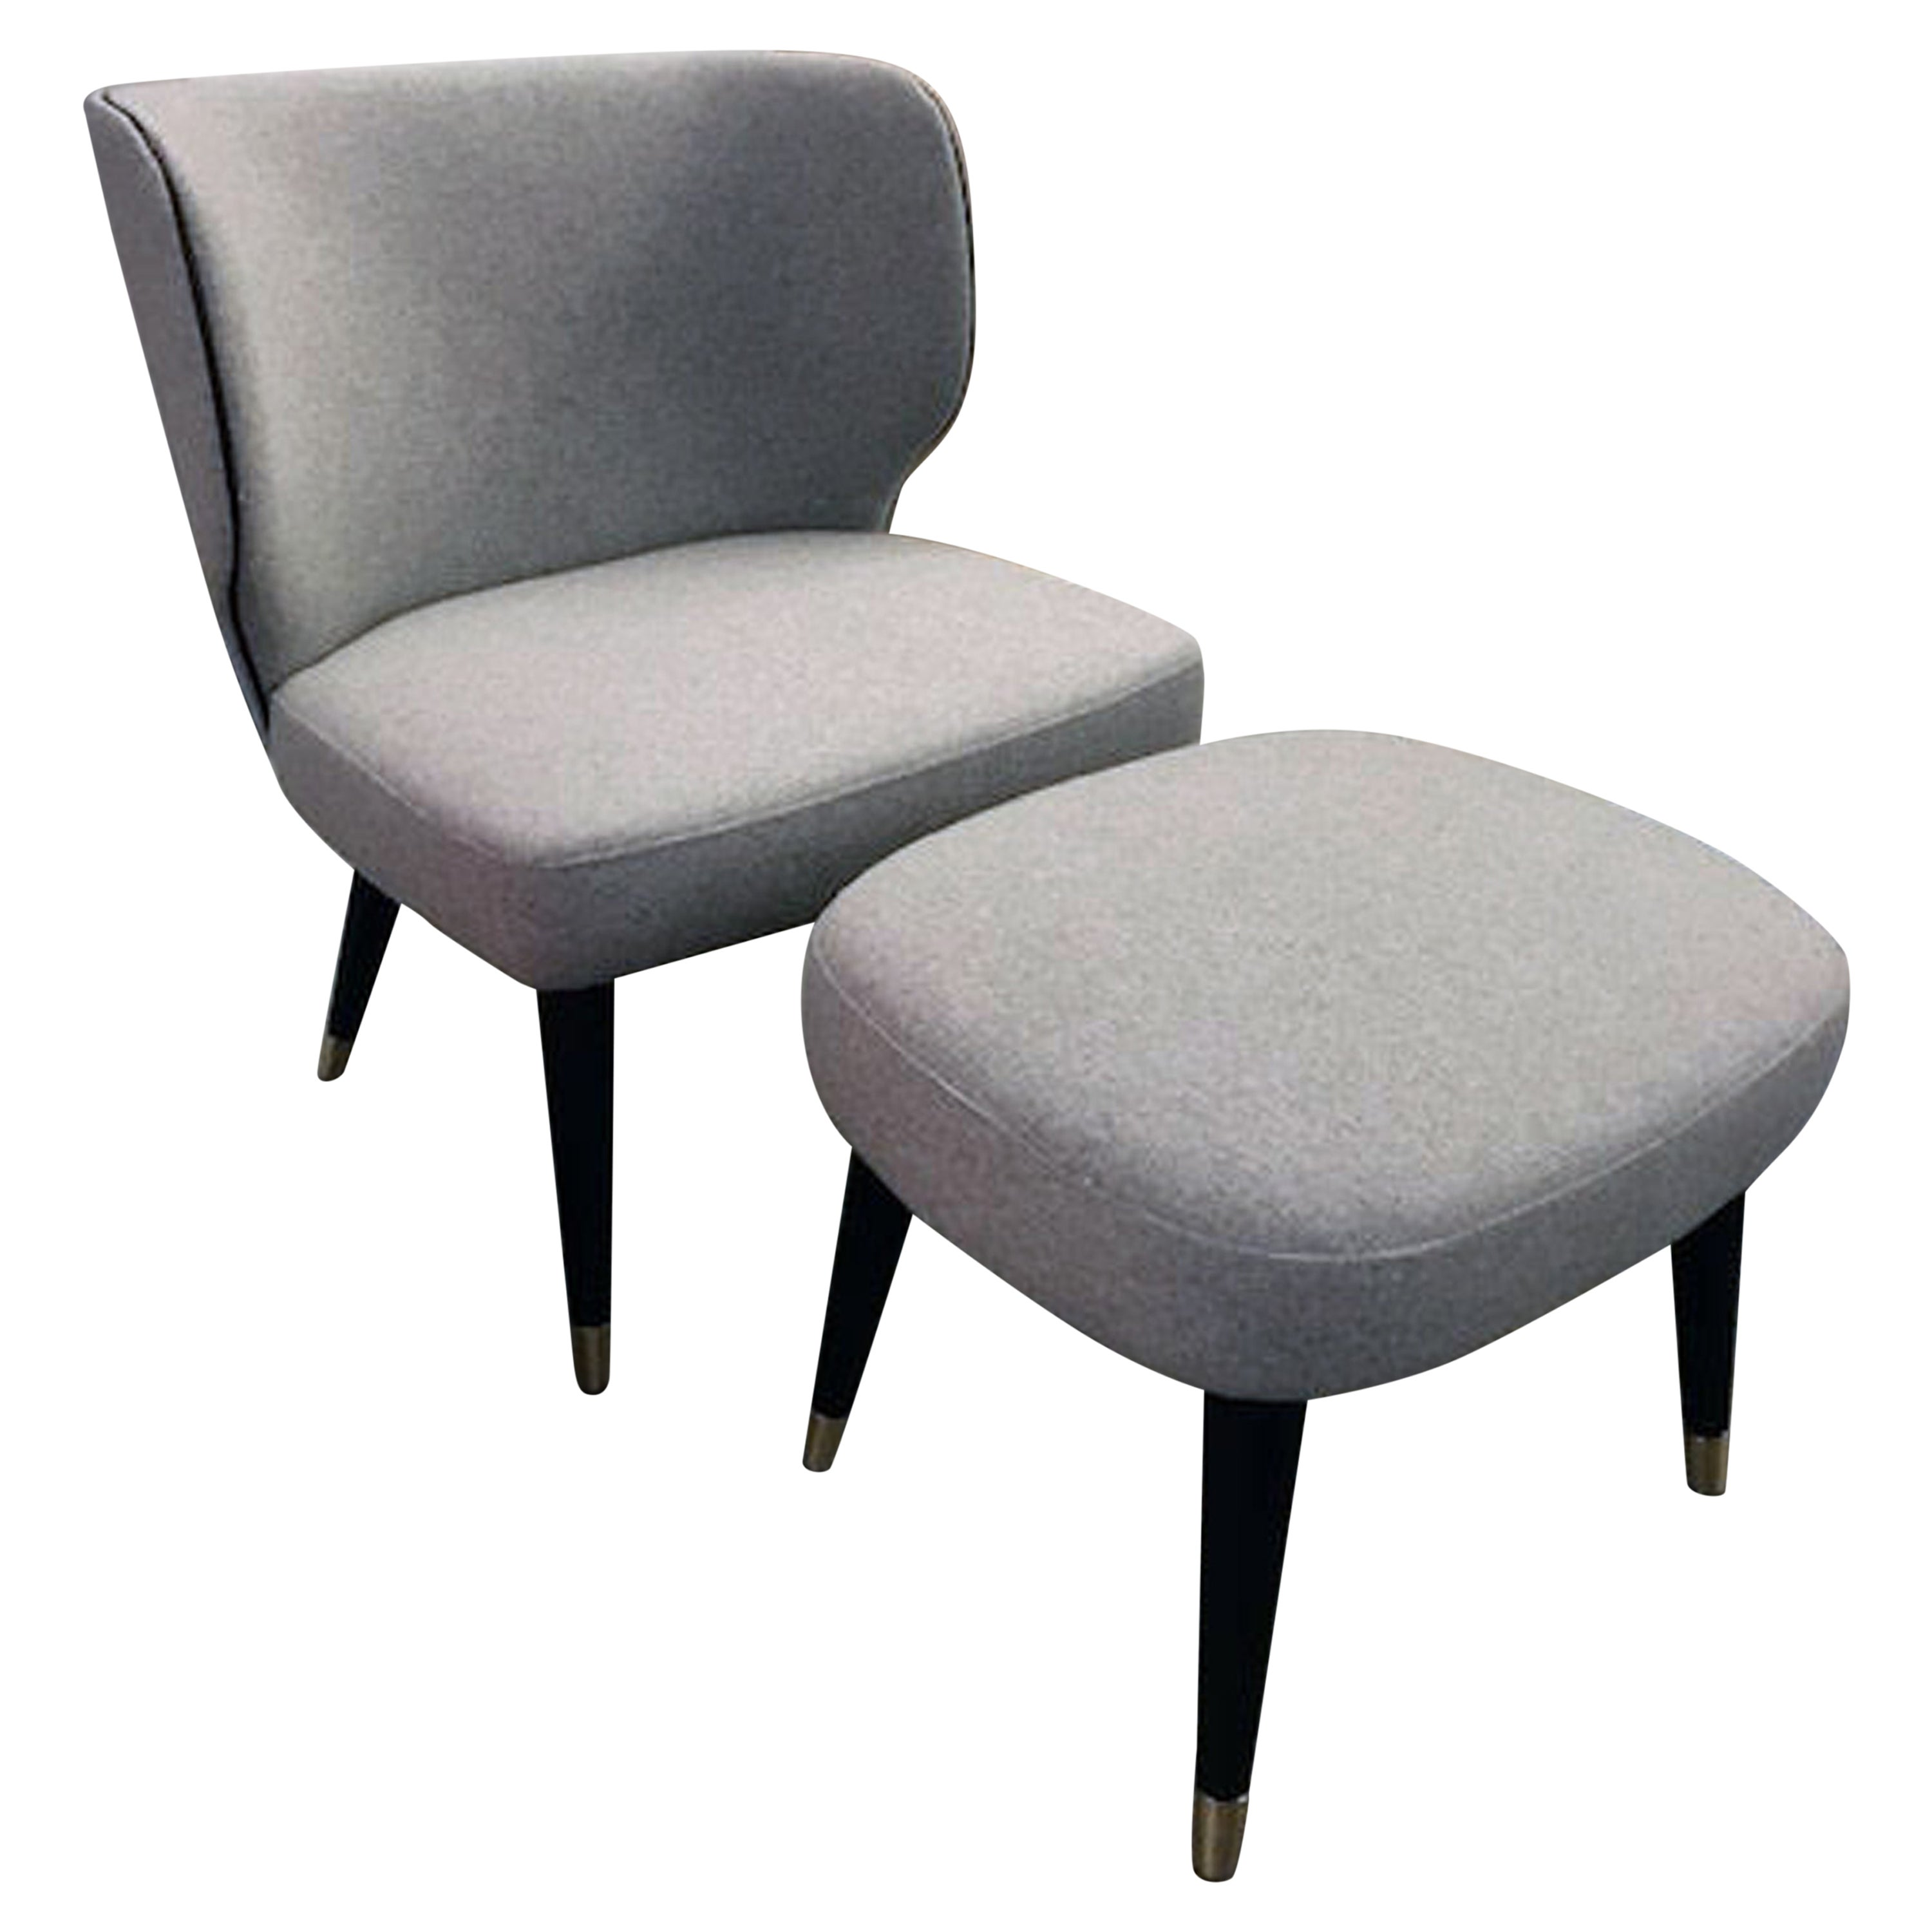 Tiffany Lounge Chairs and Ottoman